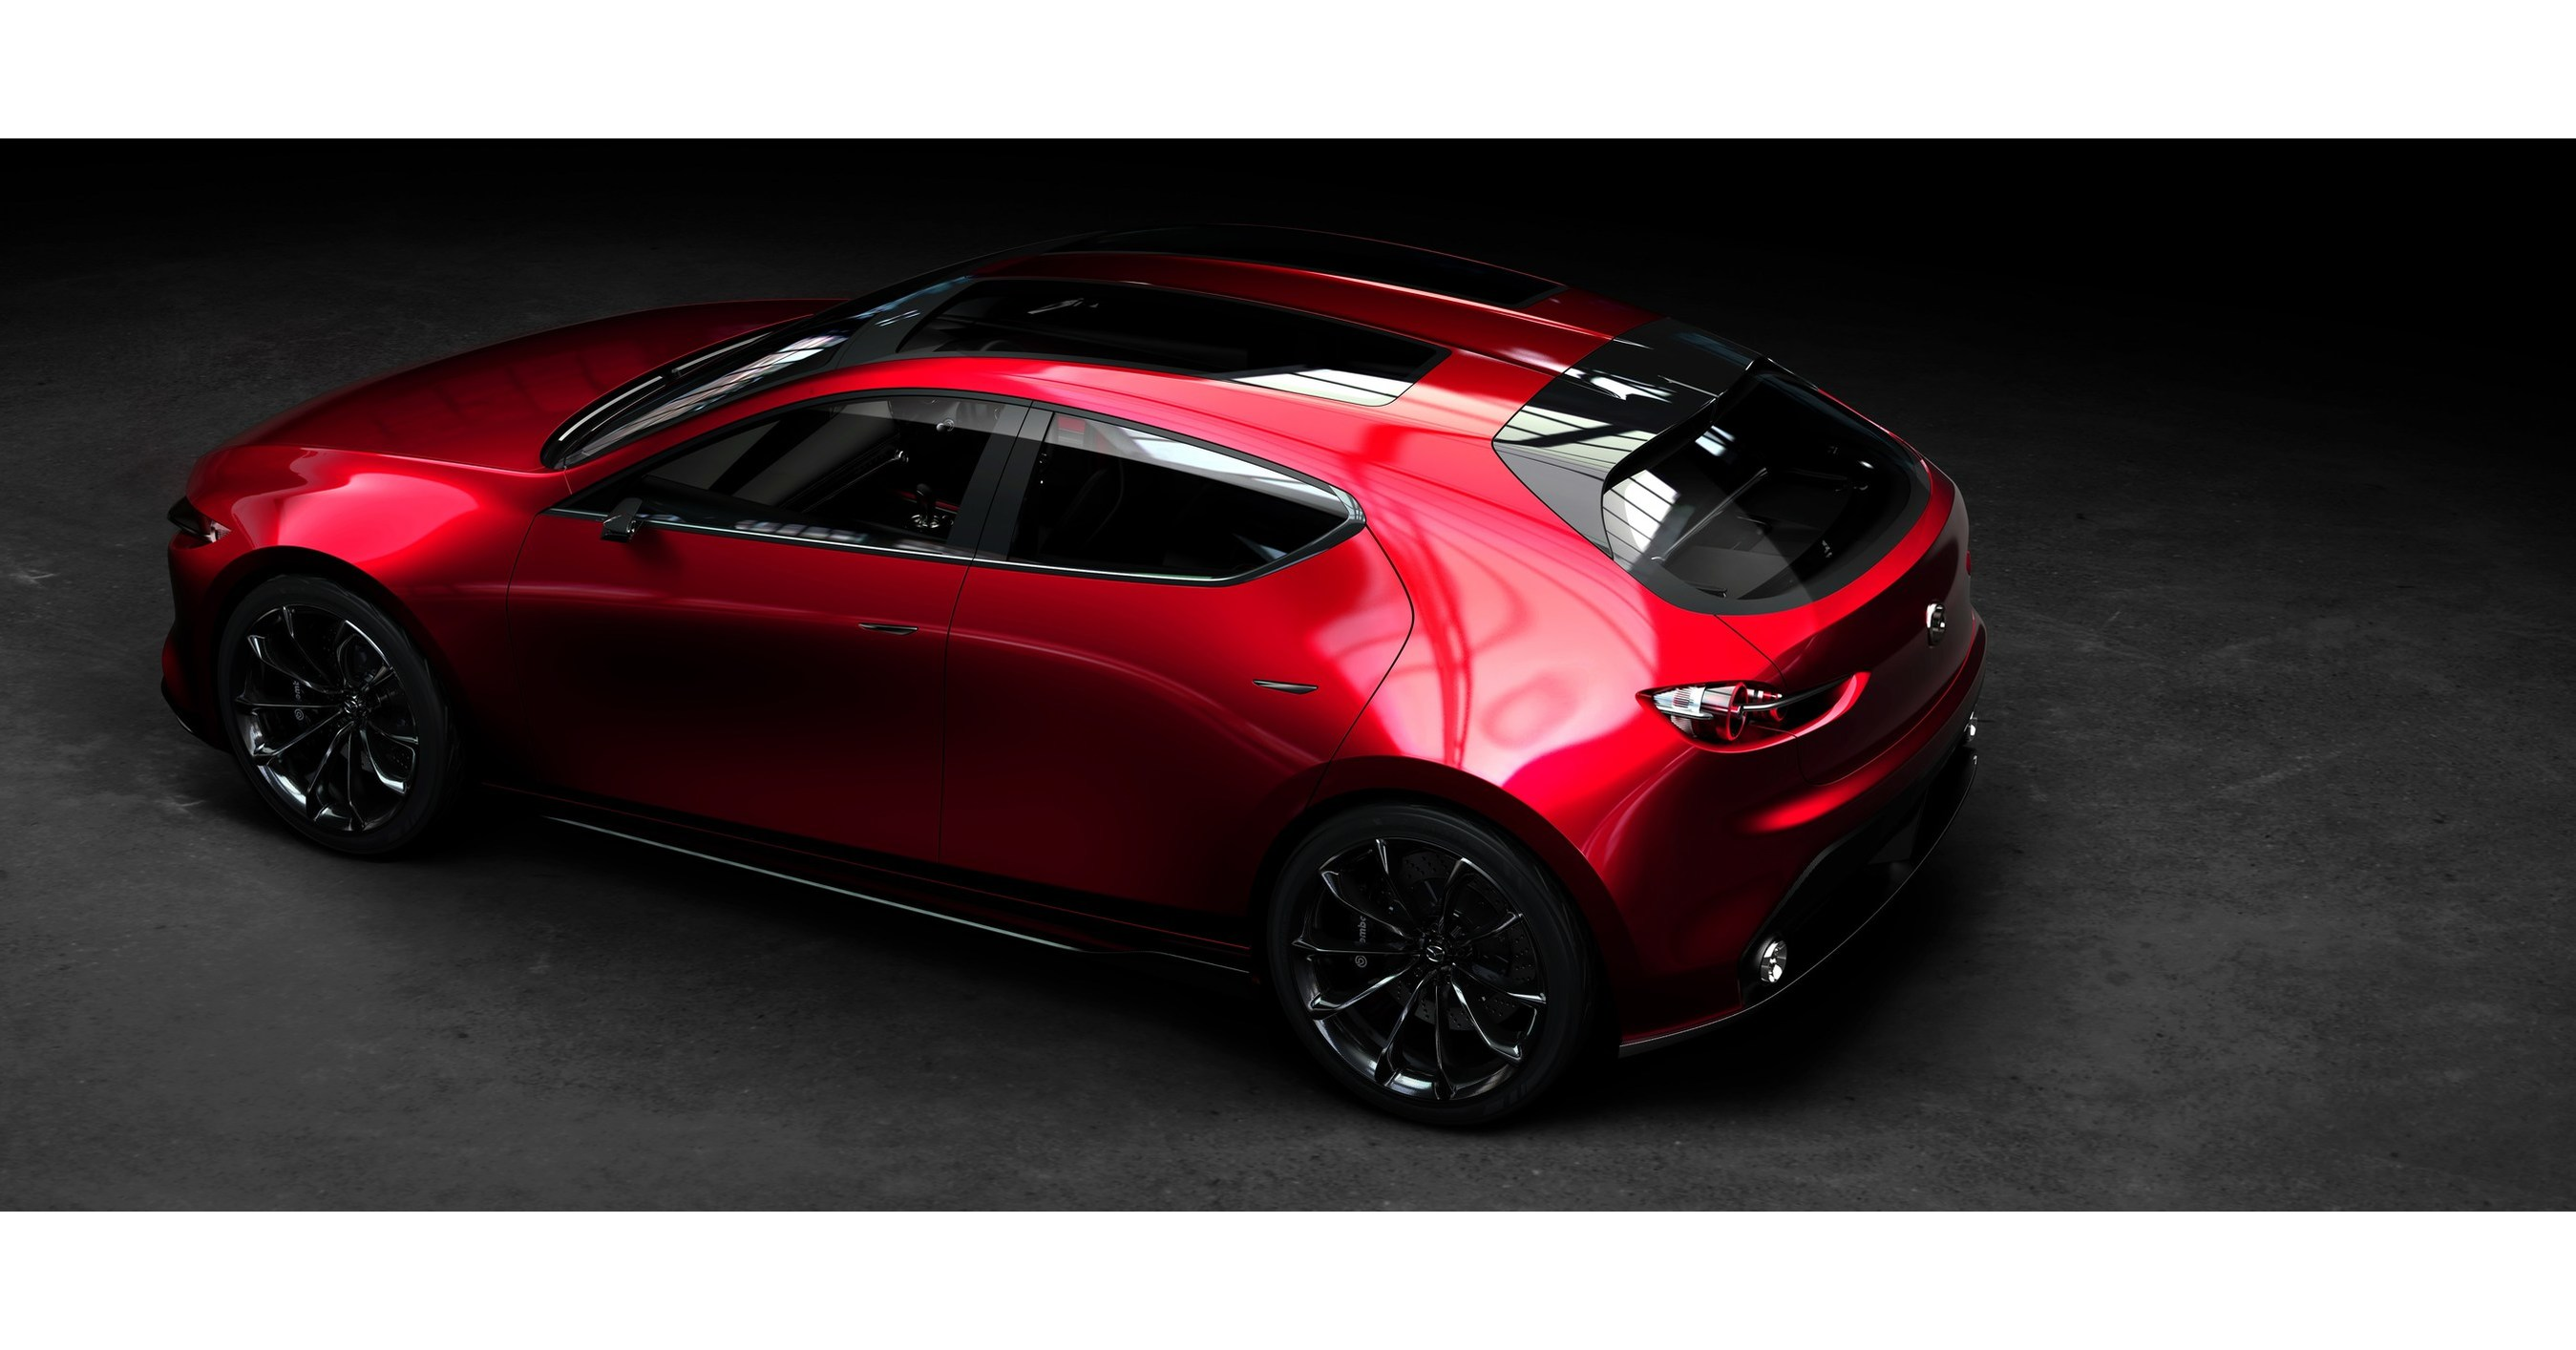 cnw mazda unveils kai concept and vision coupe at tokyo motor show. Black Bedroom Furniture Sets. Home Design Ideas